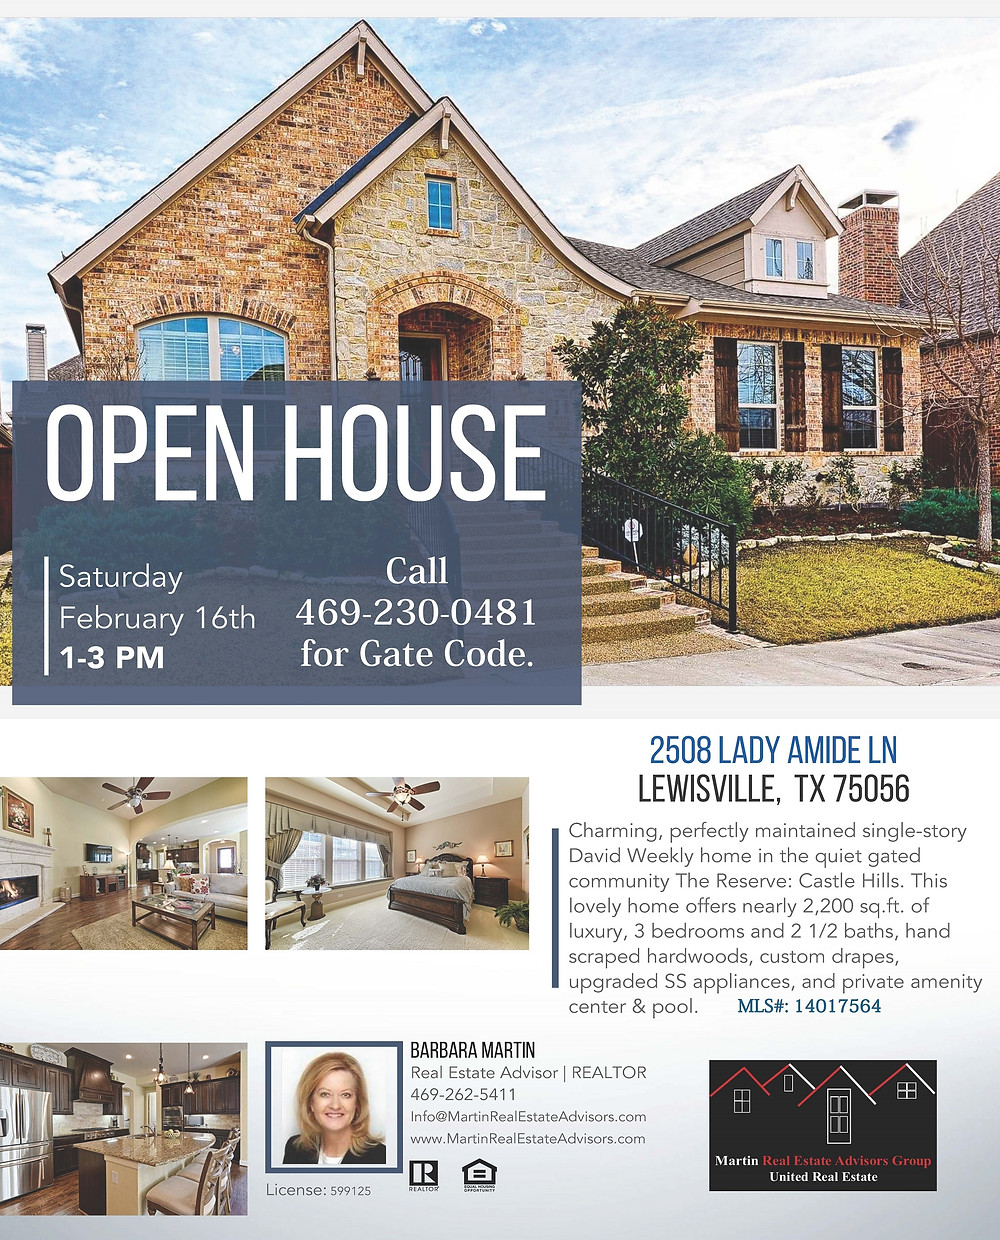 2508 Lady Amide Ln, Lewisville, TX 75056 | Open House | Martin Real Estate Advisors Group | United Real Estate